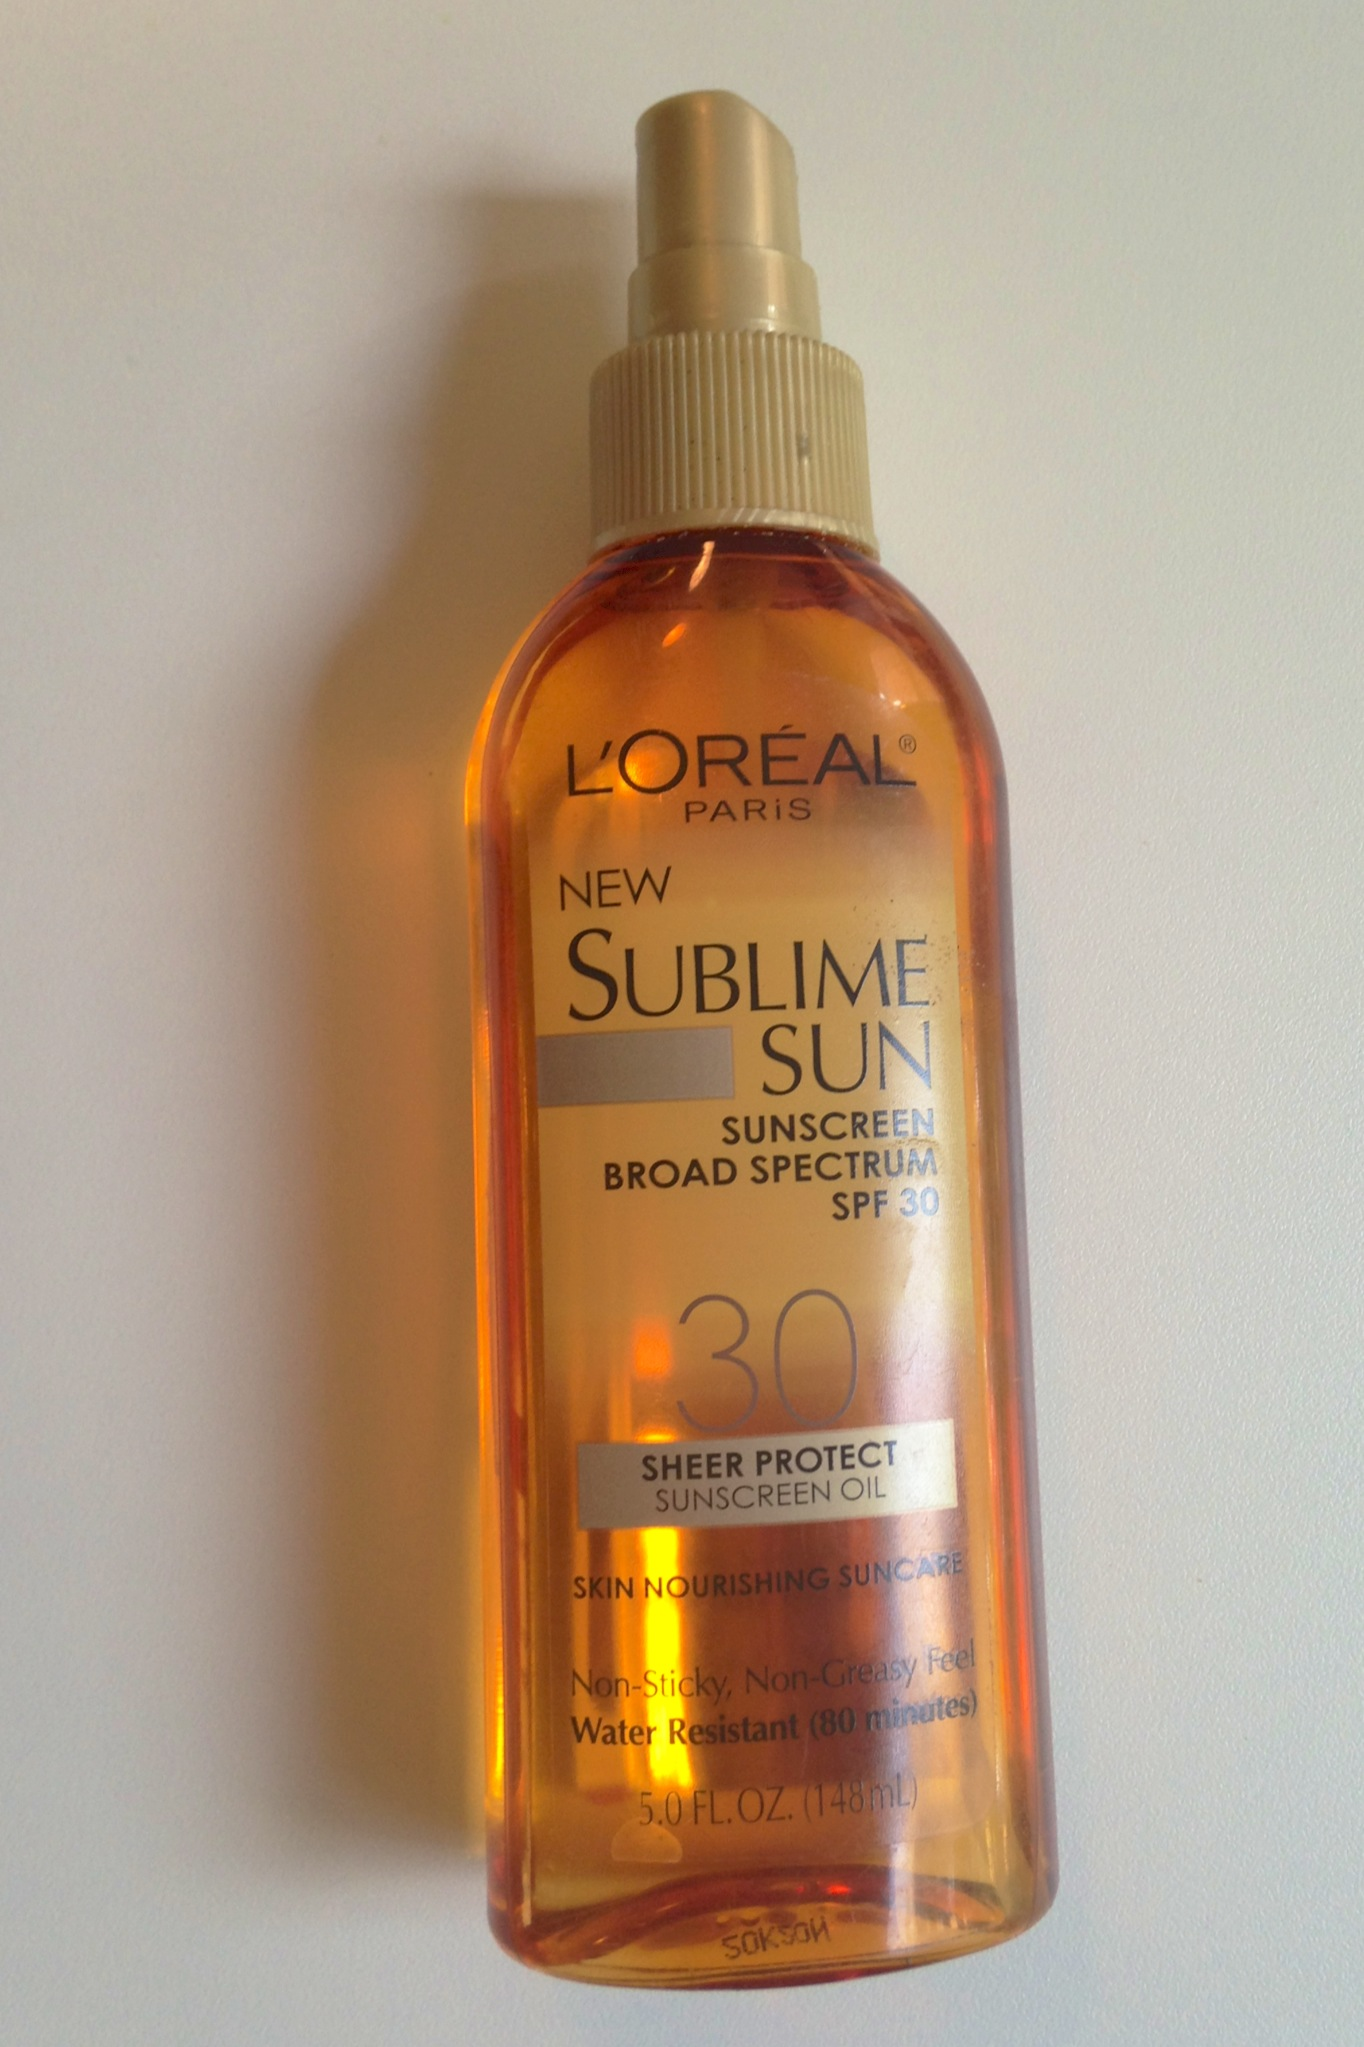 Bikini-Friendly, cellulite blurring formula, I love you!